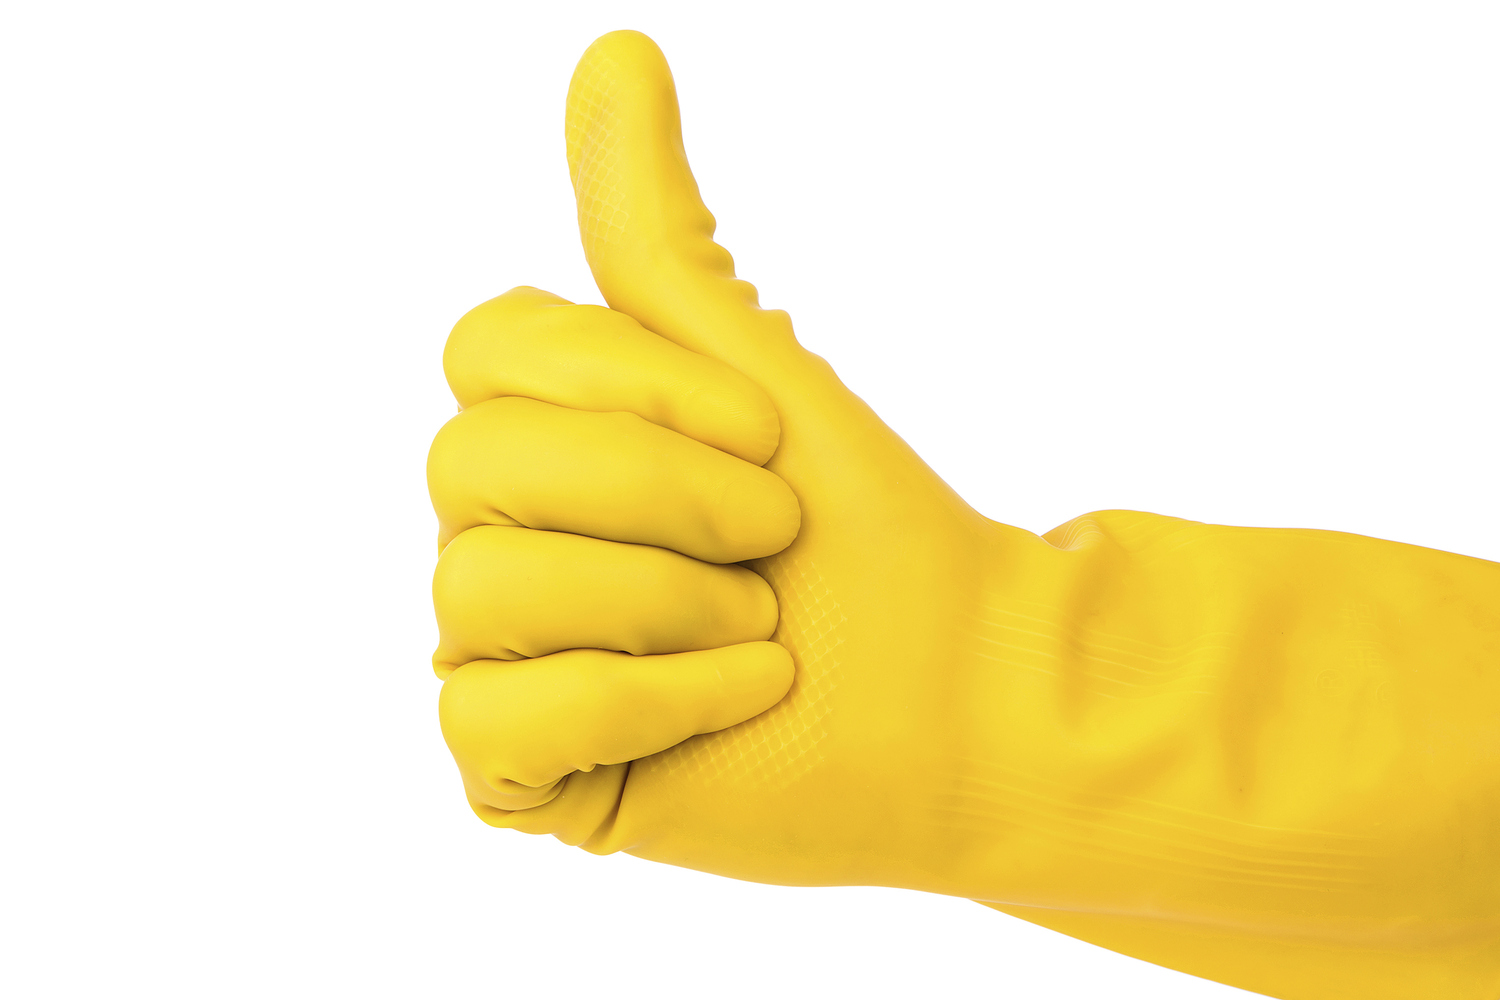 yellow glove isolated on white background:Cleaning's is perfect !